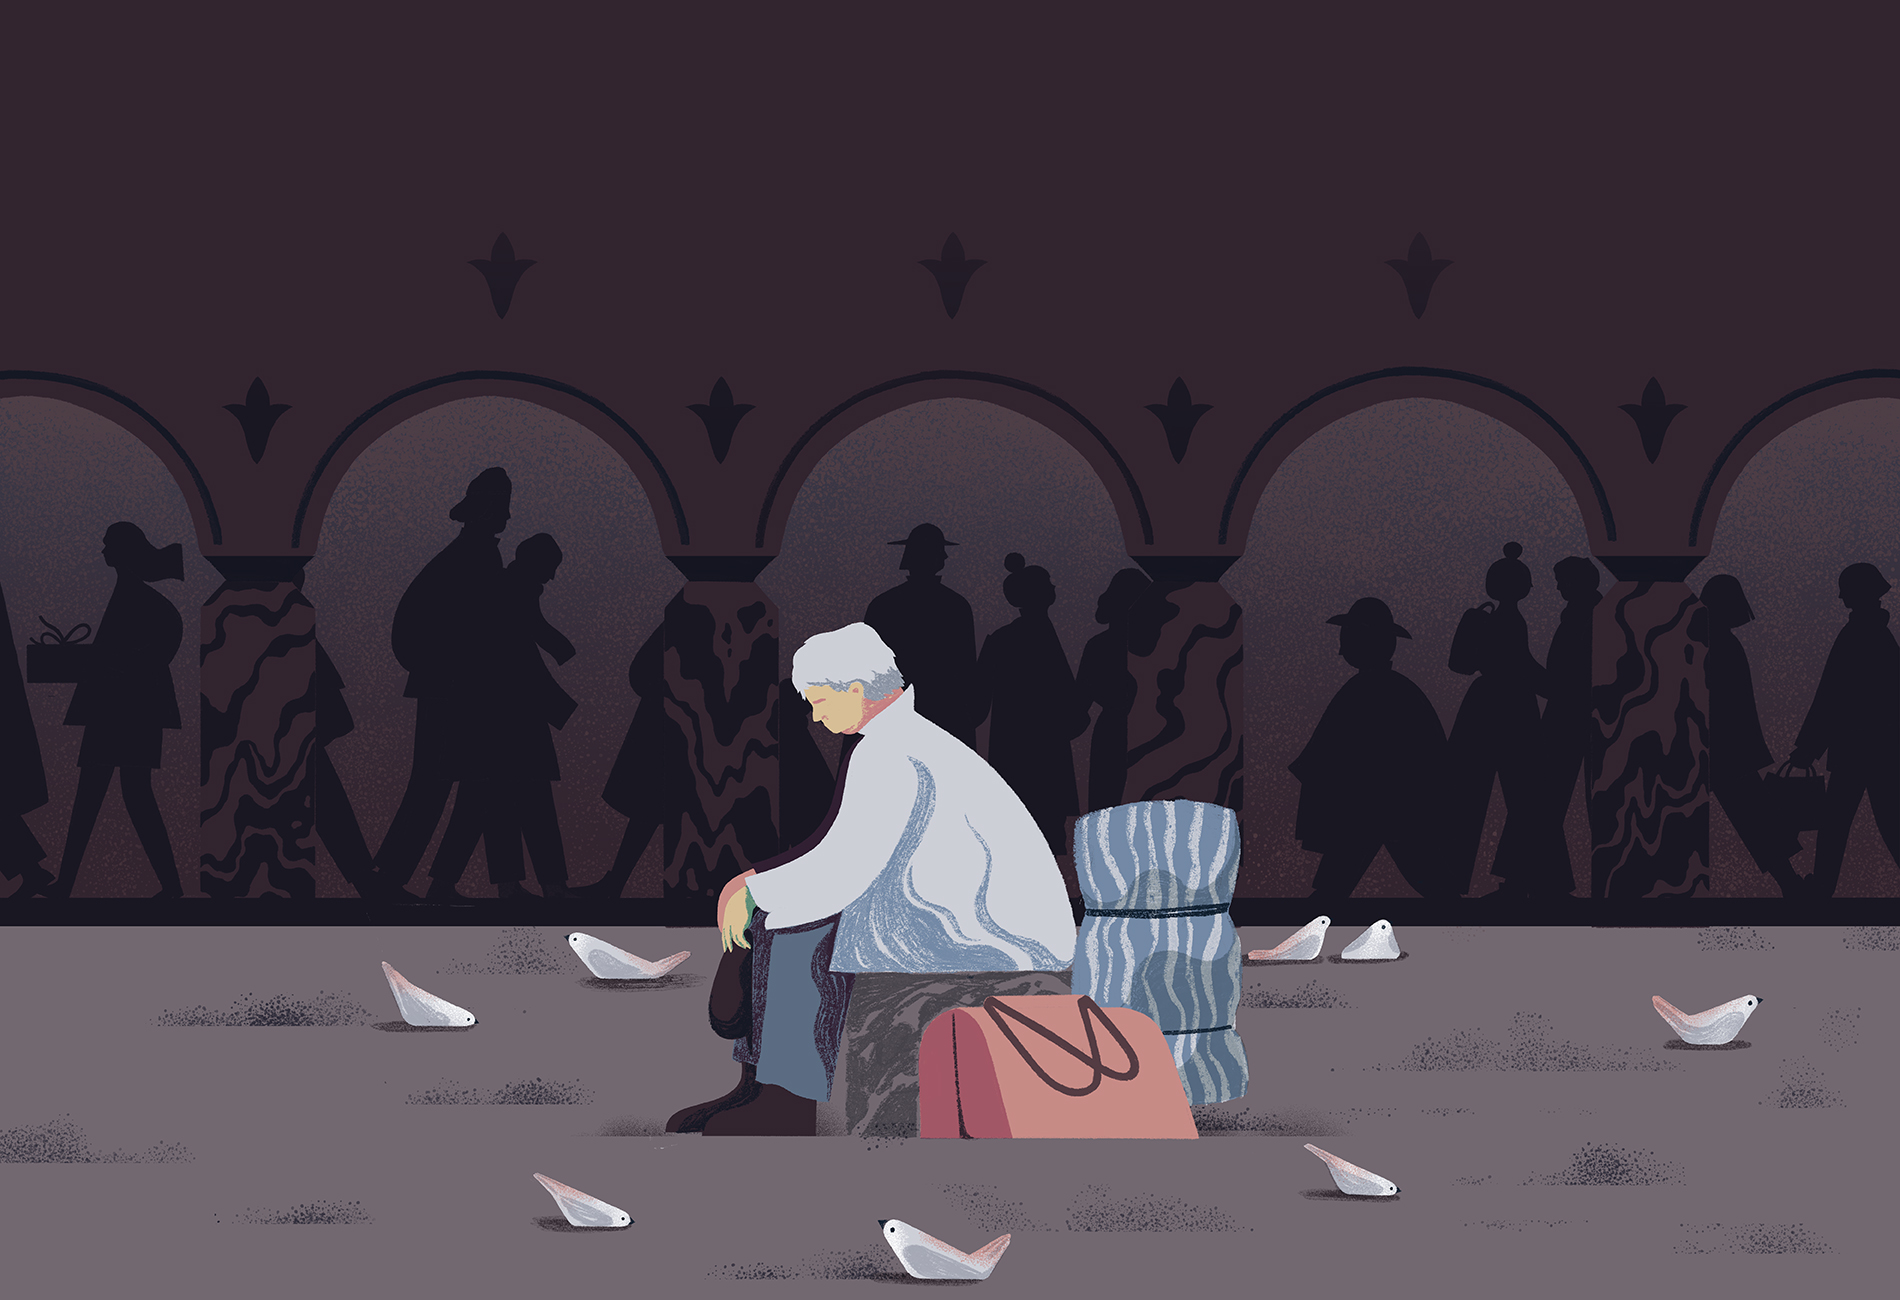 Illustration of a man sitting alone with two suitcases, surrounded by birds, while shadows of people walk in the background.